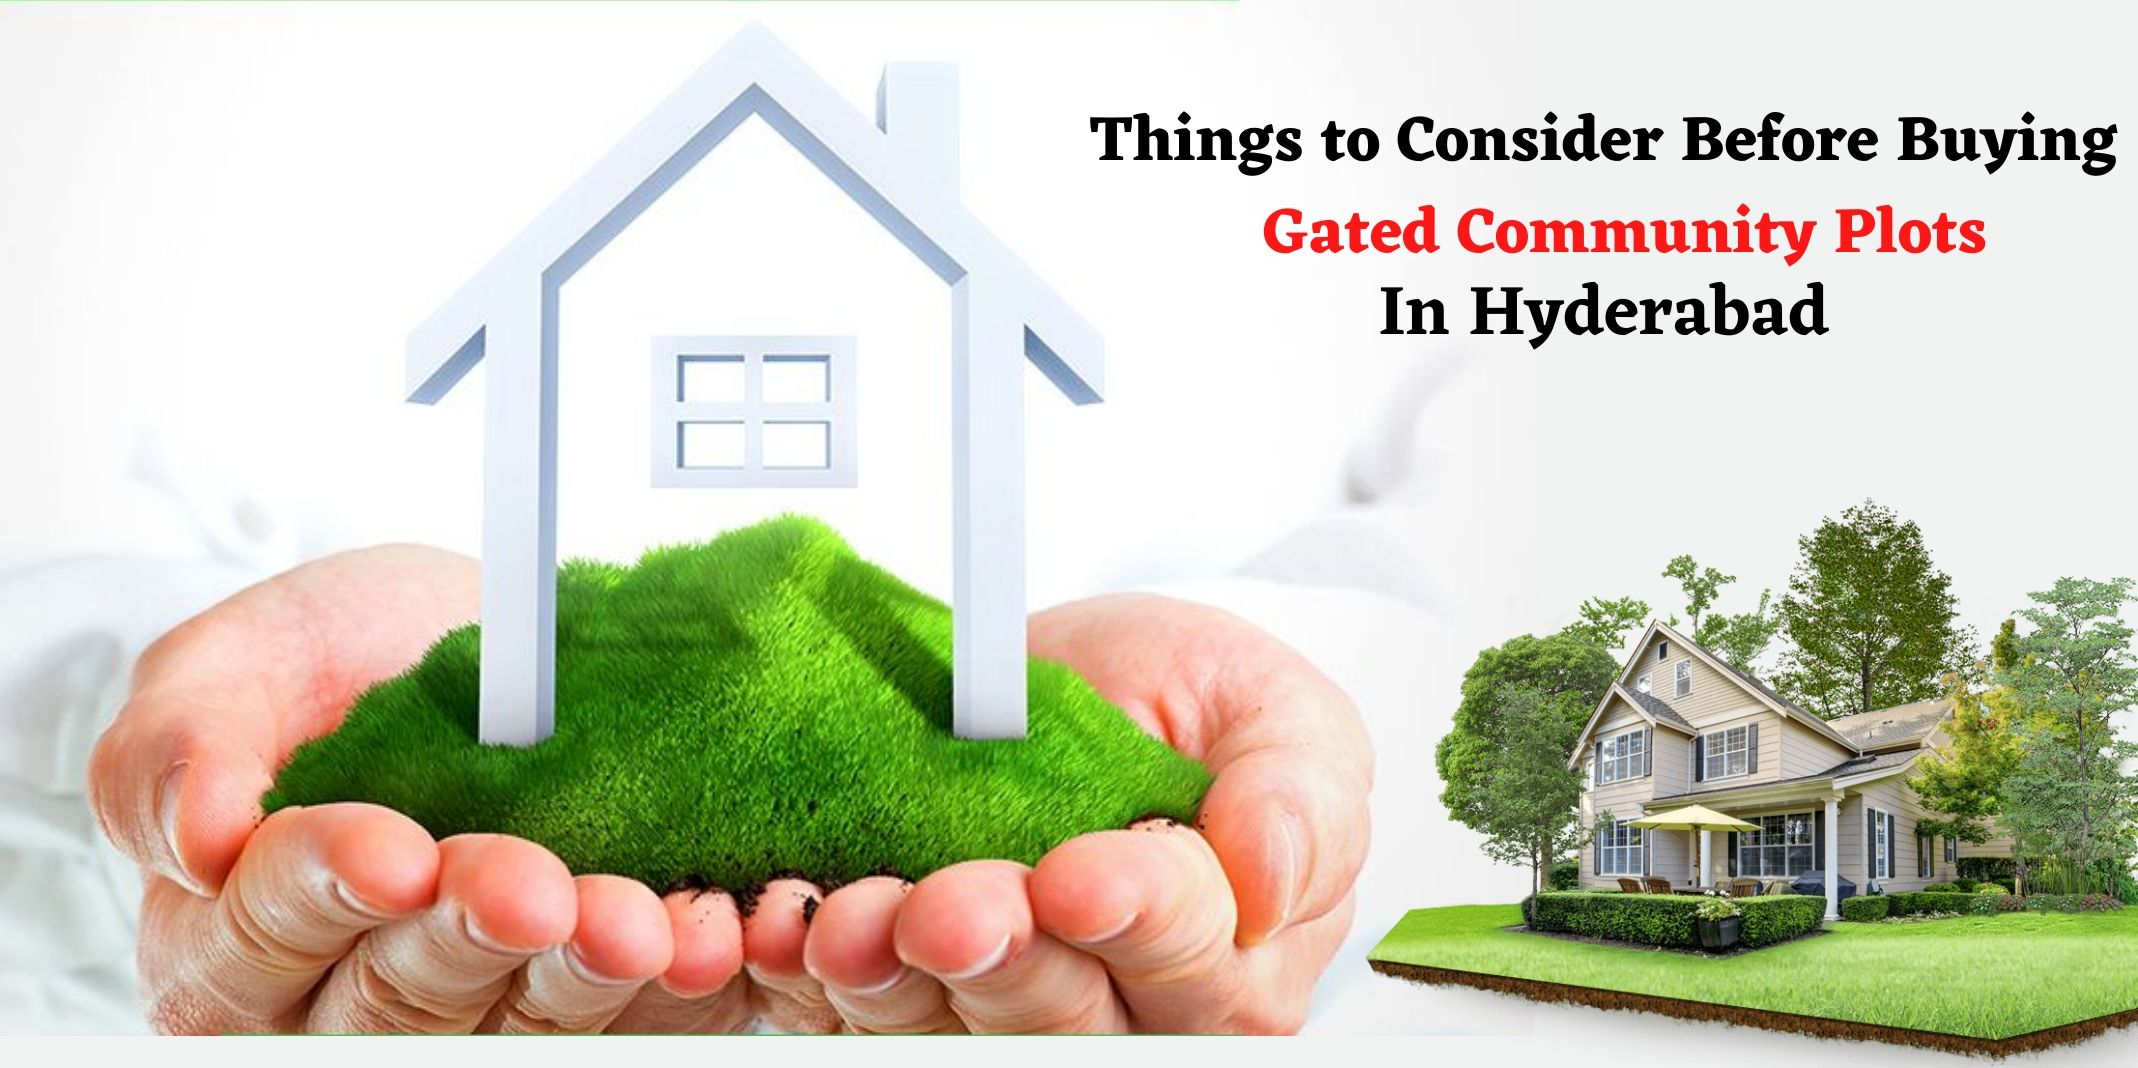 Things to consider before buying gated community plots in Hyderabad